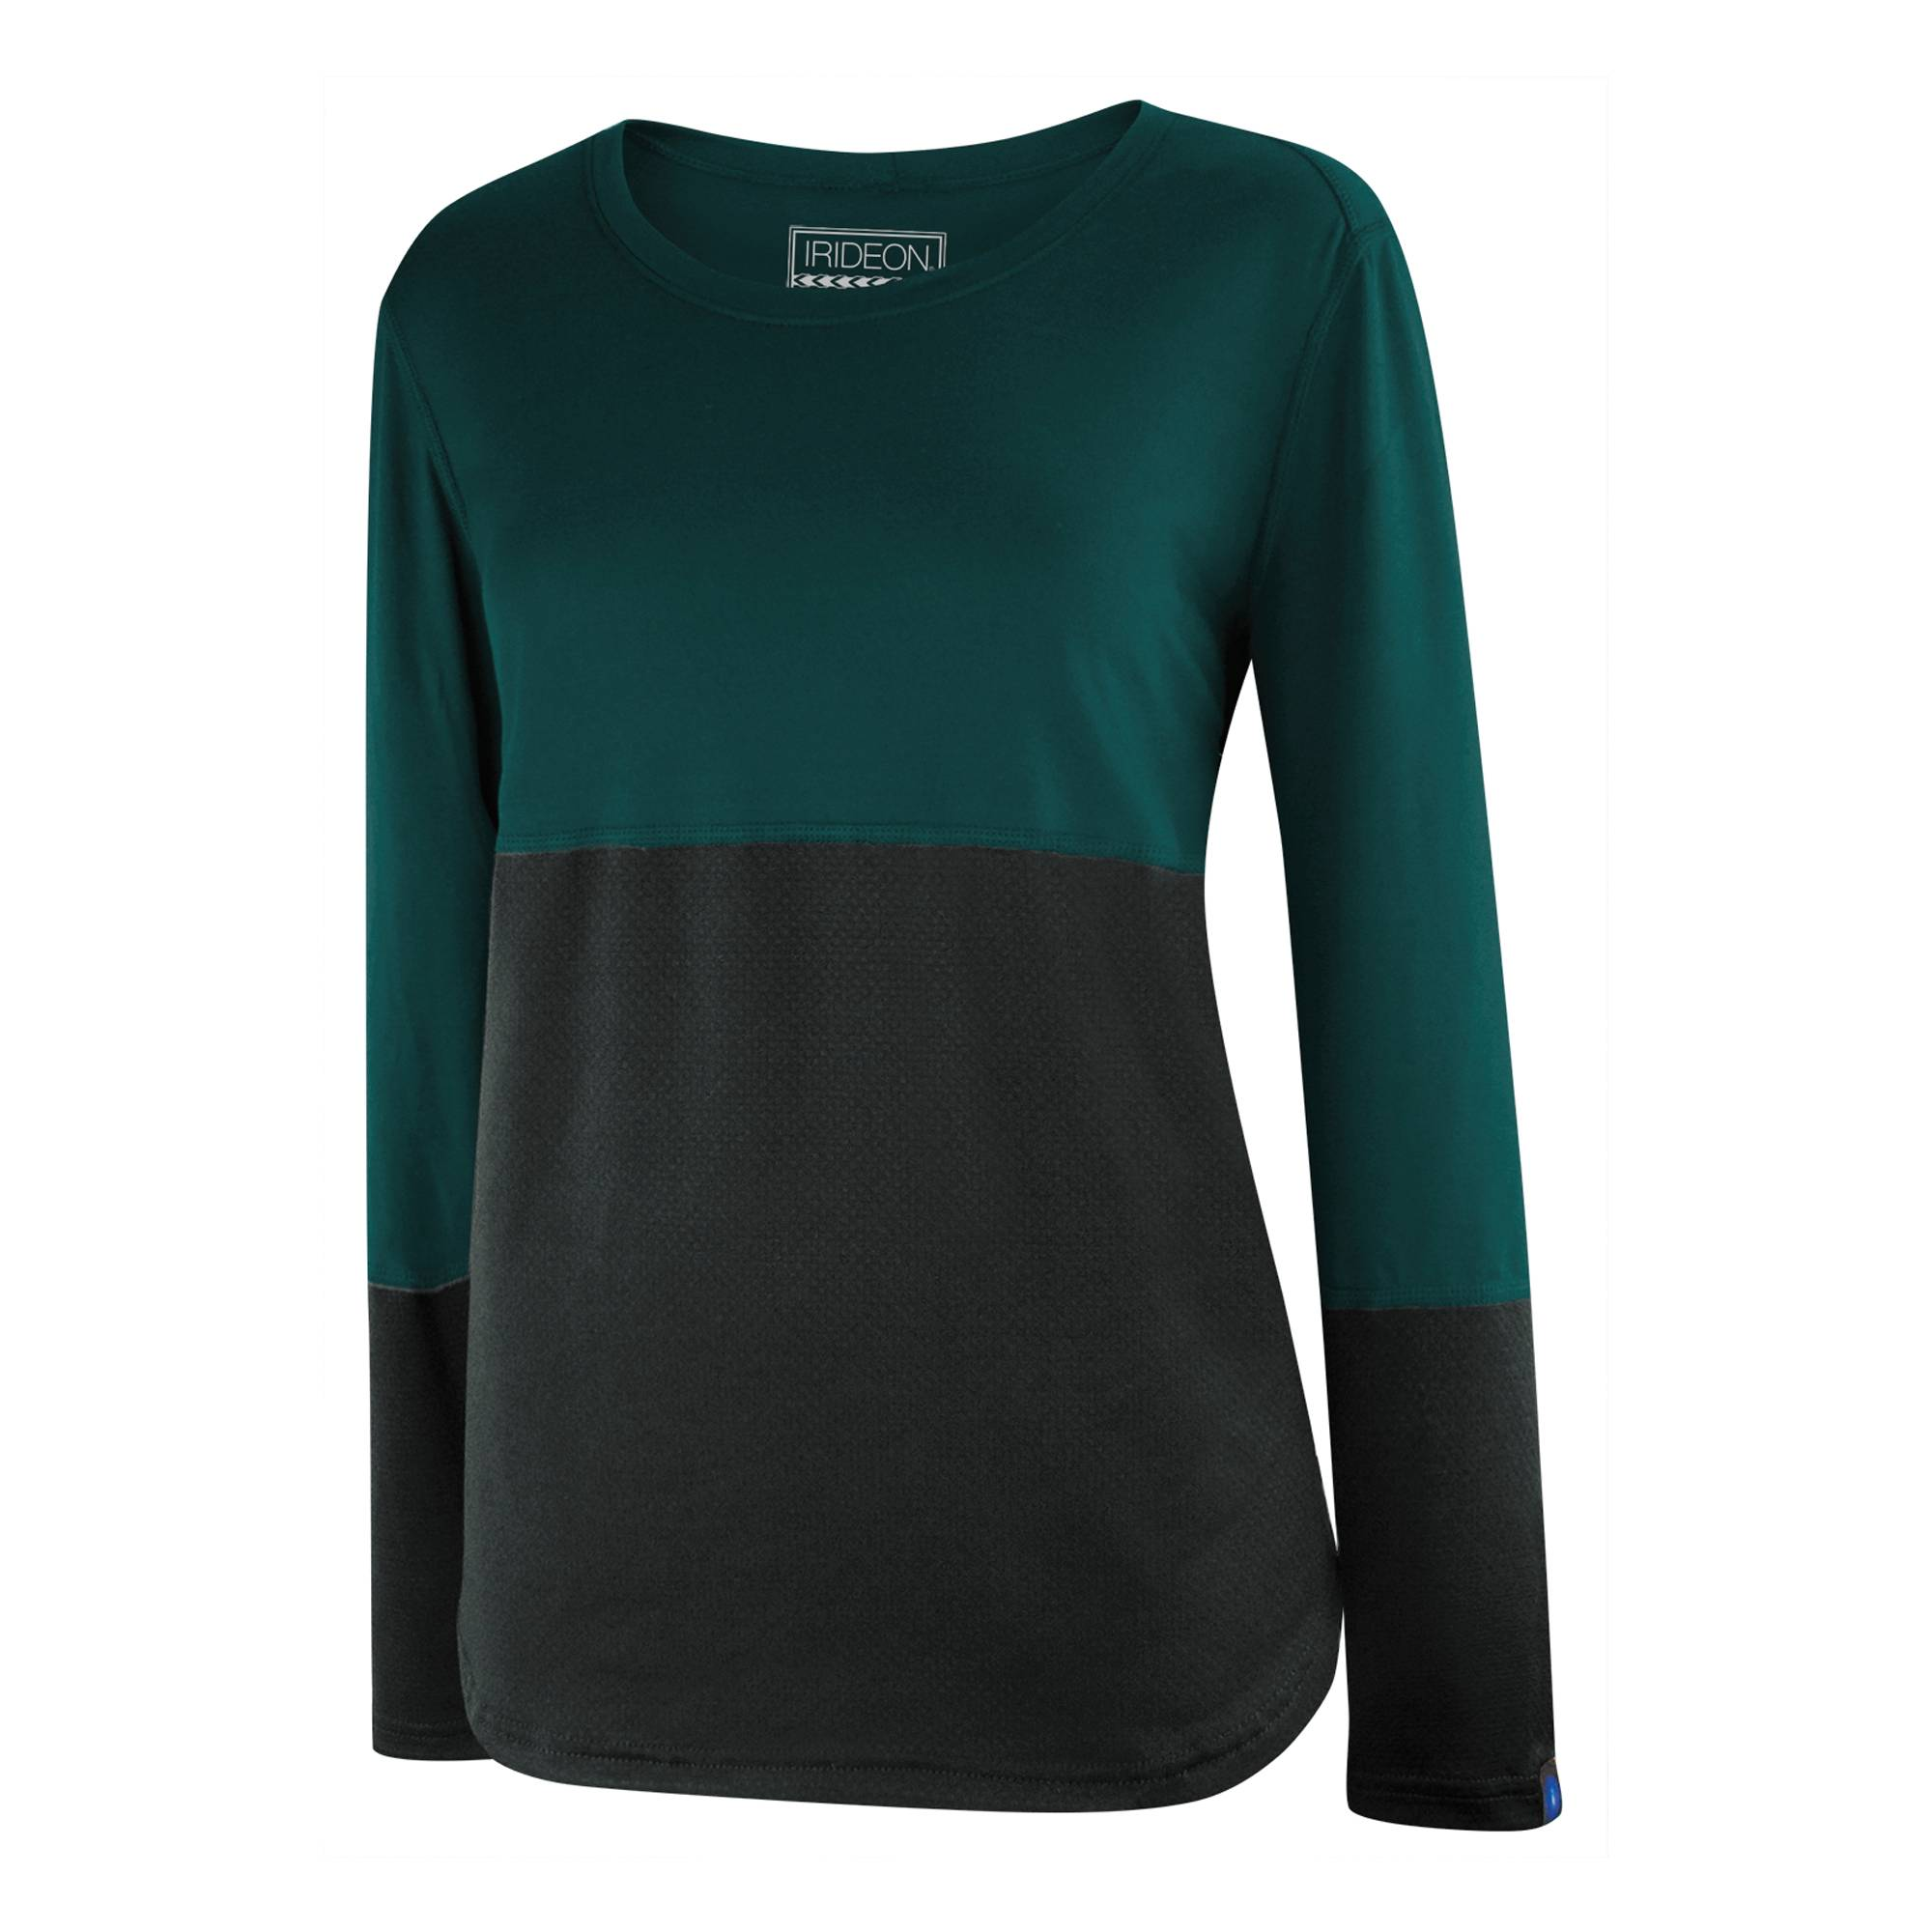 Irideon Thermaluxe Tech Top - Ladies